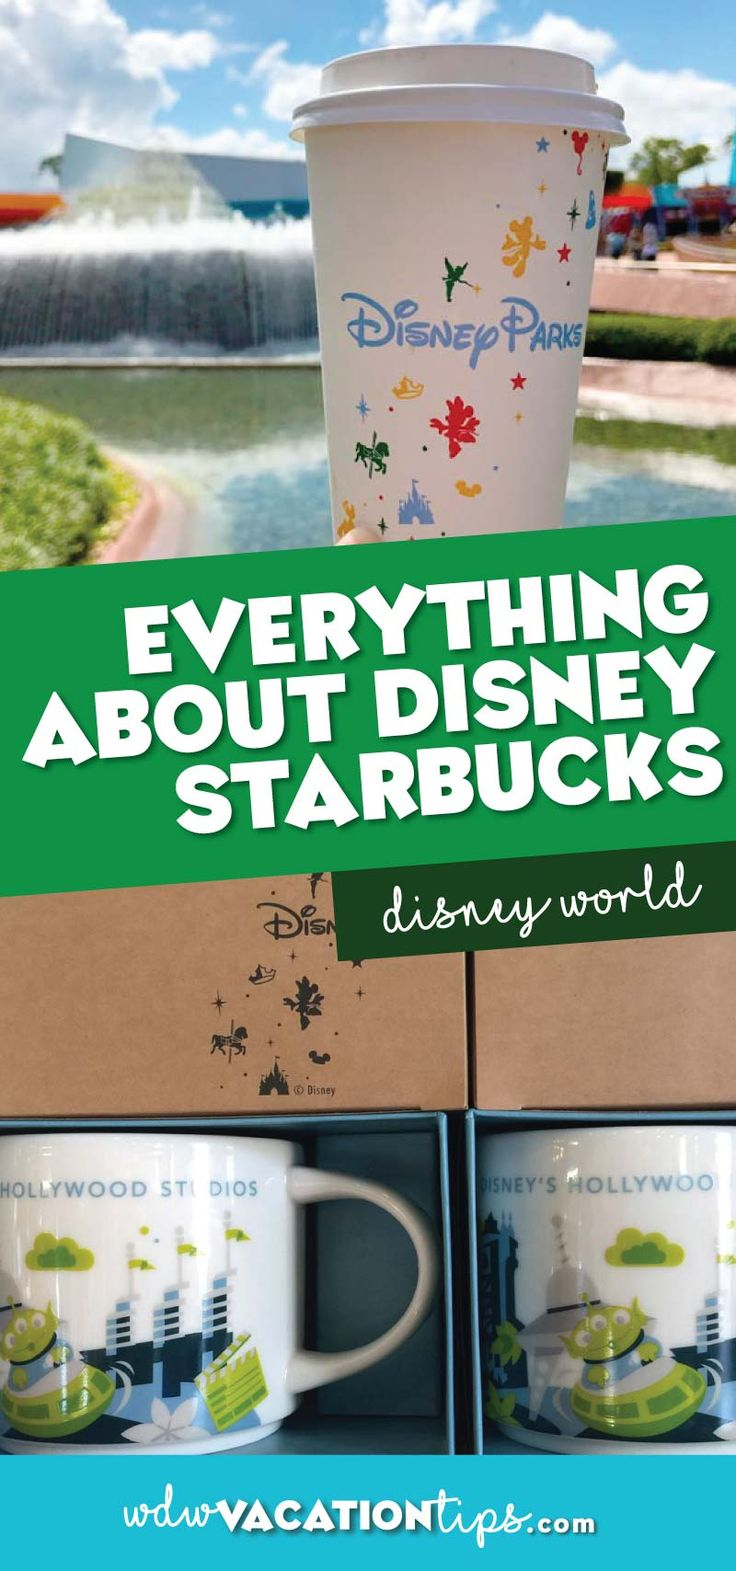 You may not realize that you can find your favorite Starbucks drinks at all four of the parks plus Disney Springs! Starbucks locations aren't actually called Starbucks so it's really easy to walk on by without realizing it.  So here is the scoop on everything you need to know about Starbucks at Disney World.